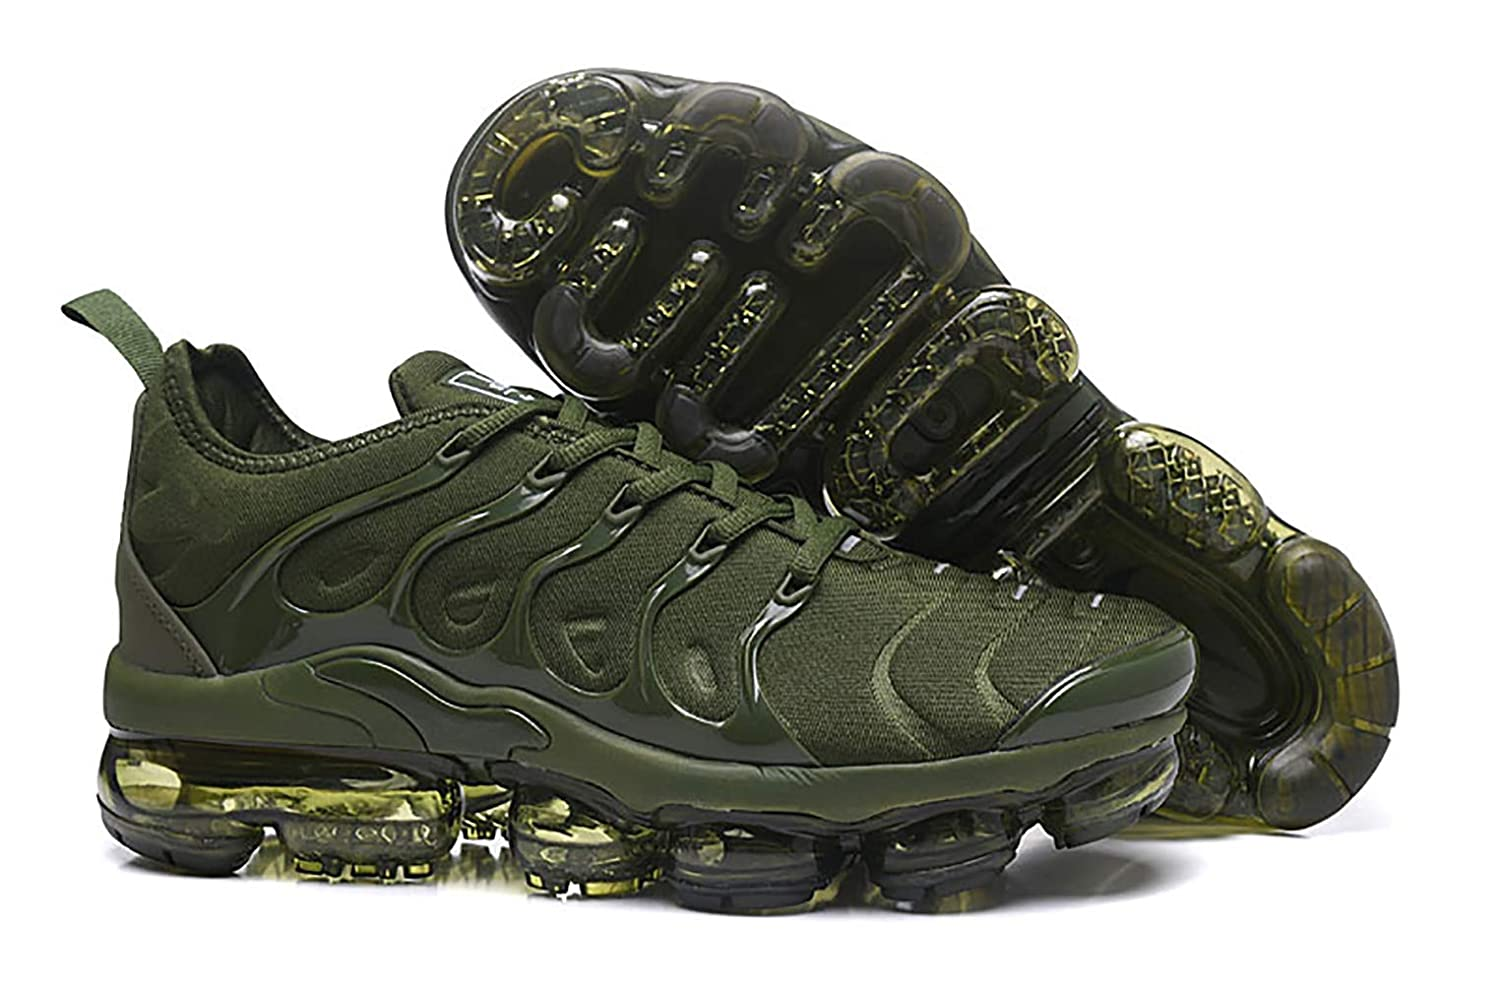 50a7ba286c Amazon.com | RUNSHOT Men's Air Vapormax Plus TN Running Shoe Basketball  Shoes -ArmyGreen | Fashion Sneakers